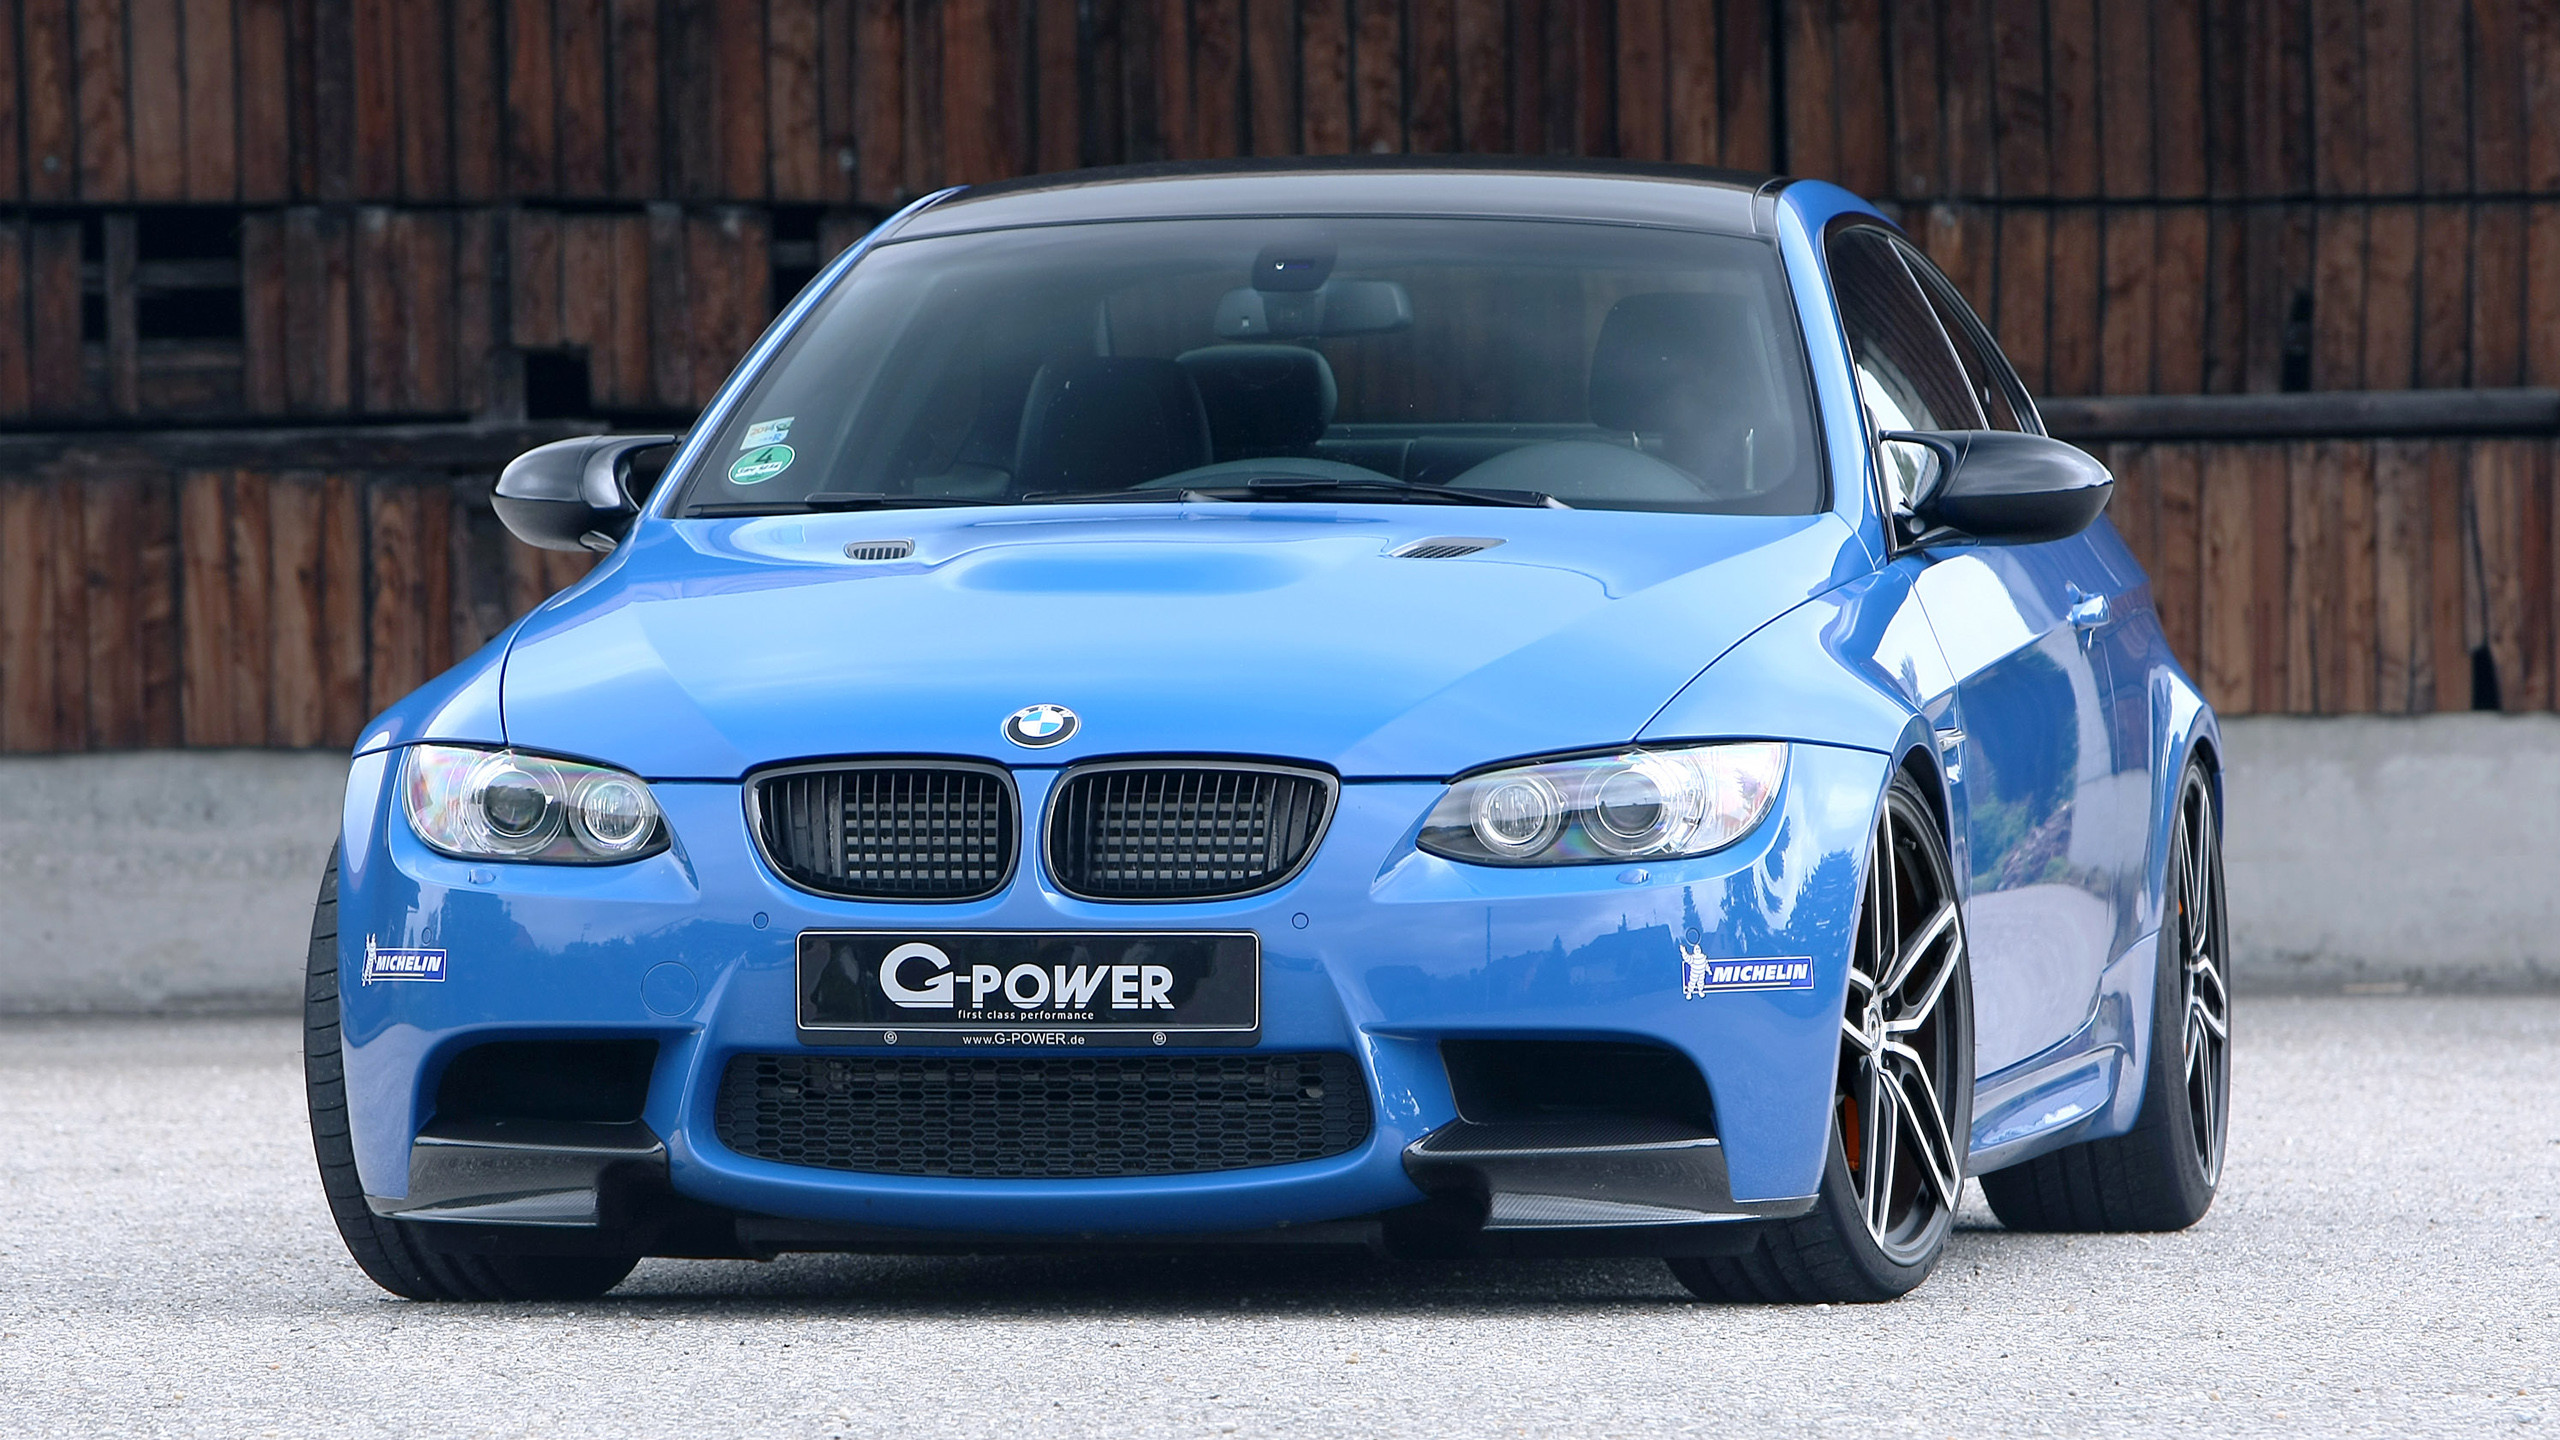 1920x1080 BMW M3 E46 Tuning Front Fire Abstract Car